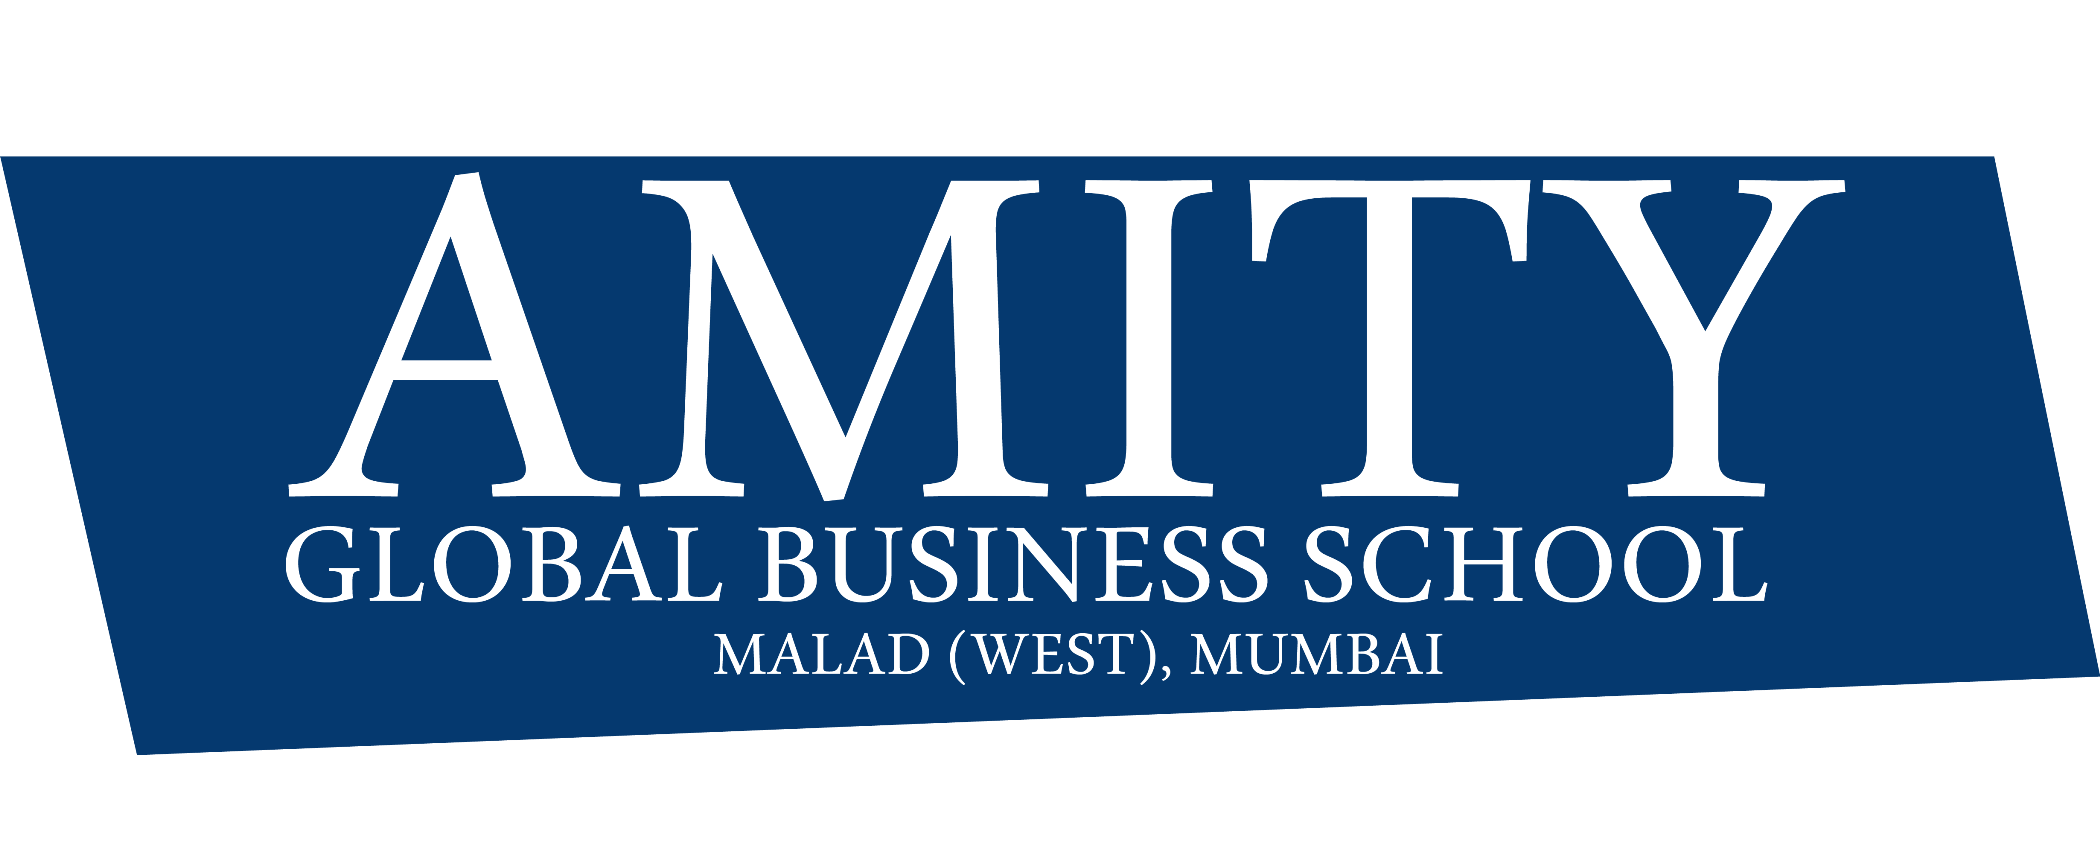 Amity Global Business School - Mumbai Image